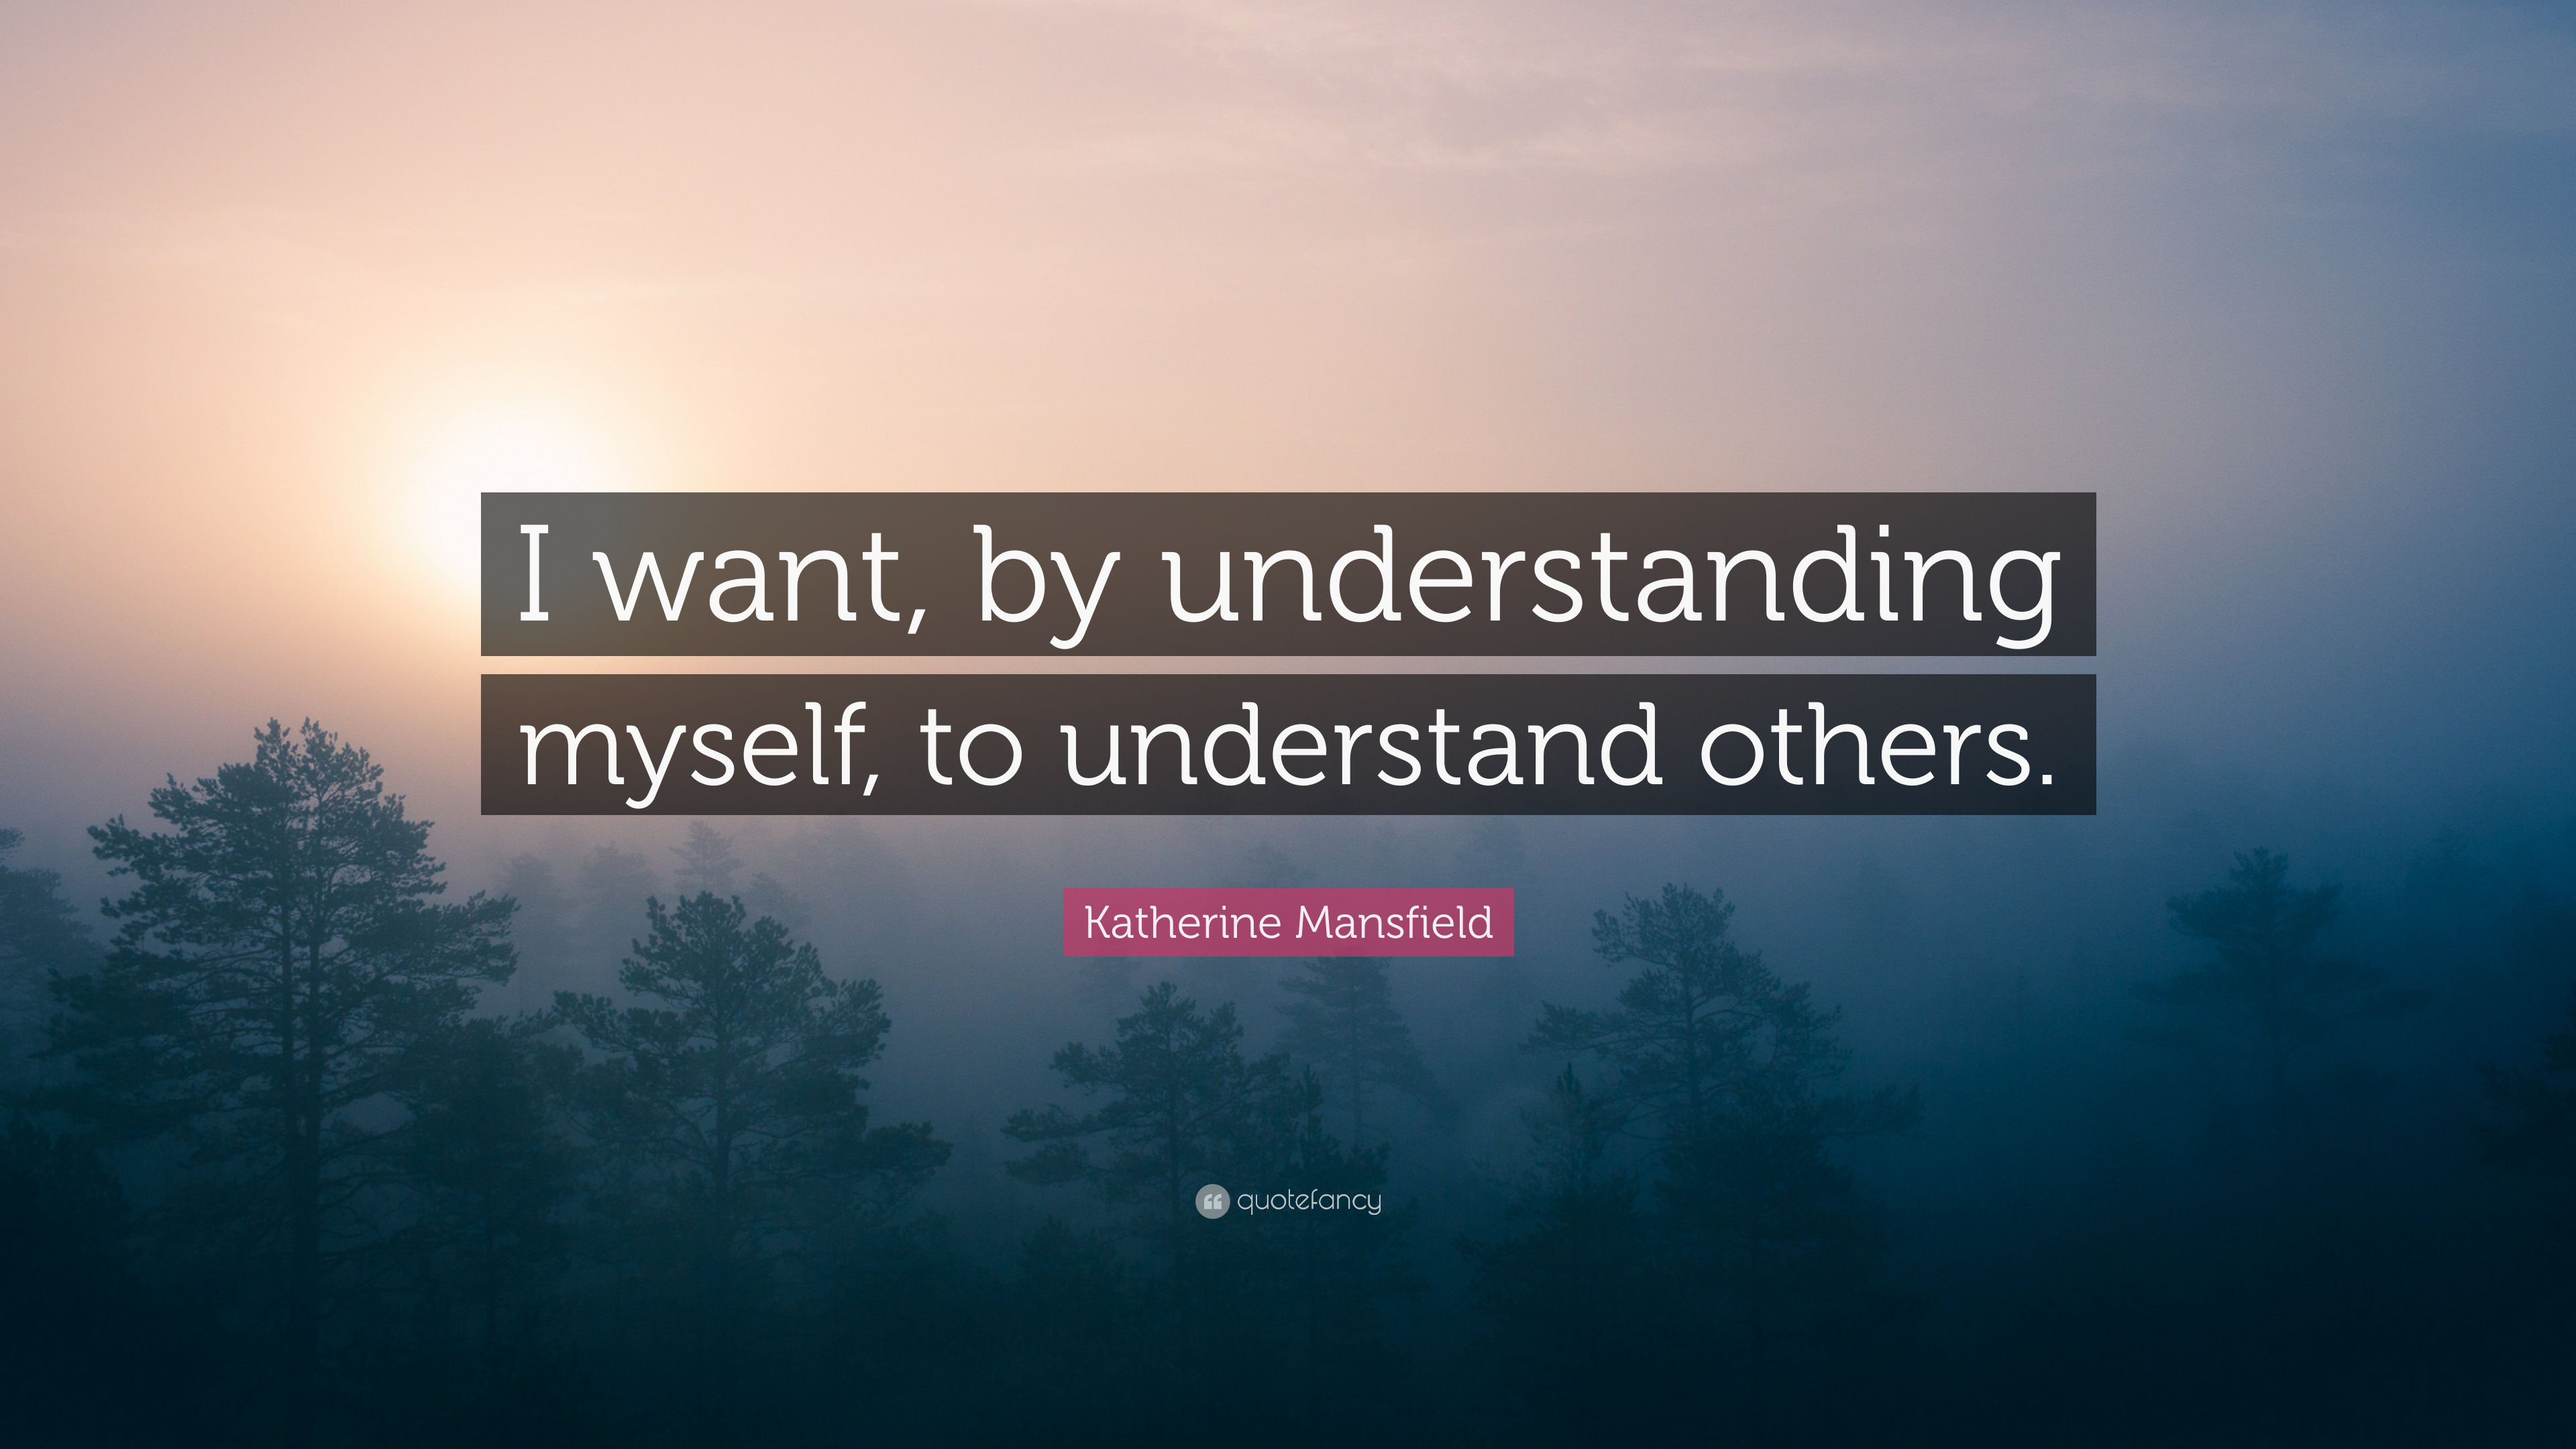 Katherine Mansfield Quote I Want By Understanding Myself To Understand Others 6 Wallpapers Quotefancy